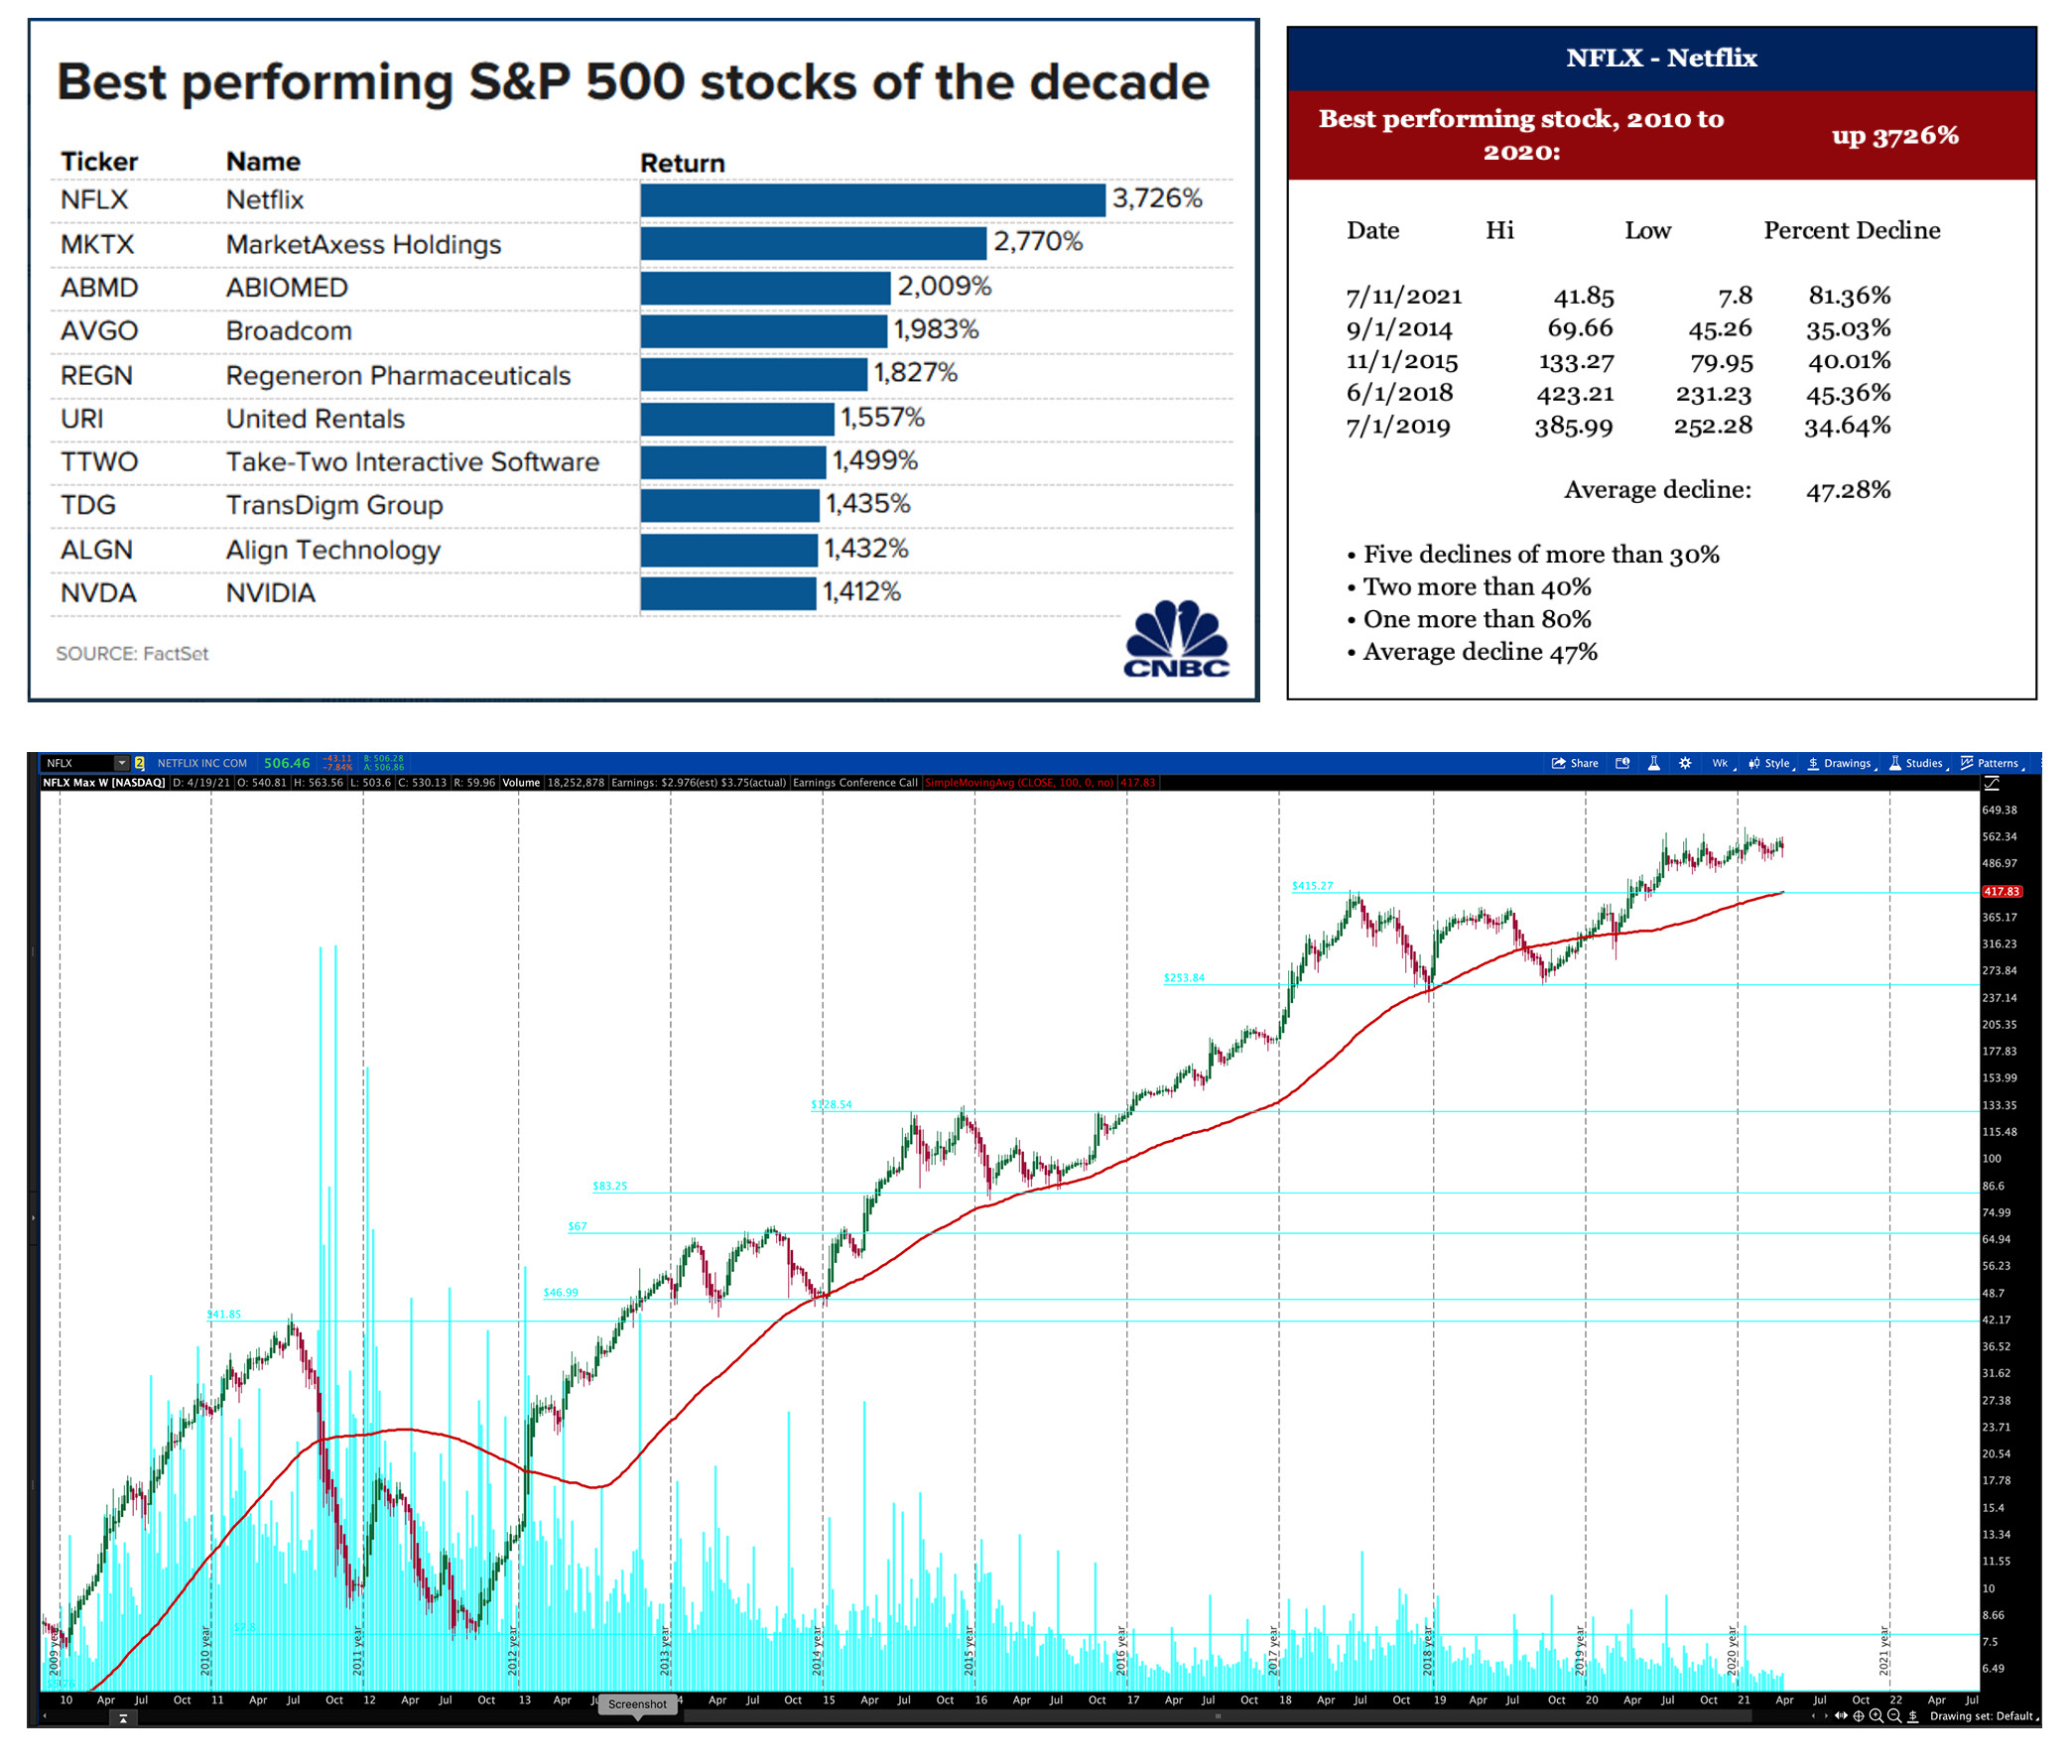 NFLX Chart With Declines and Best Performing